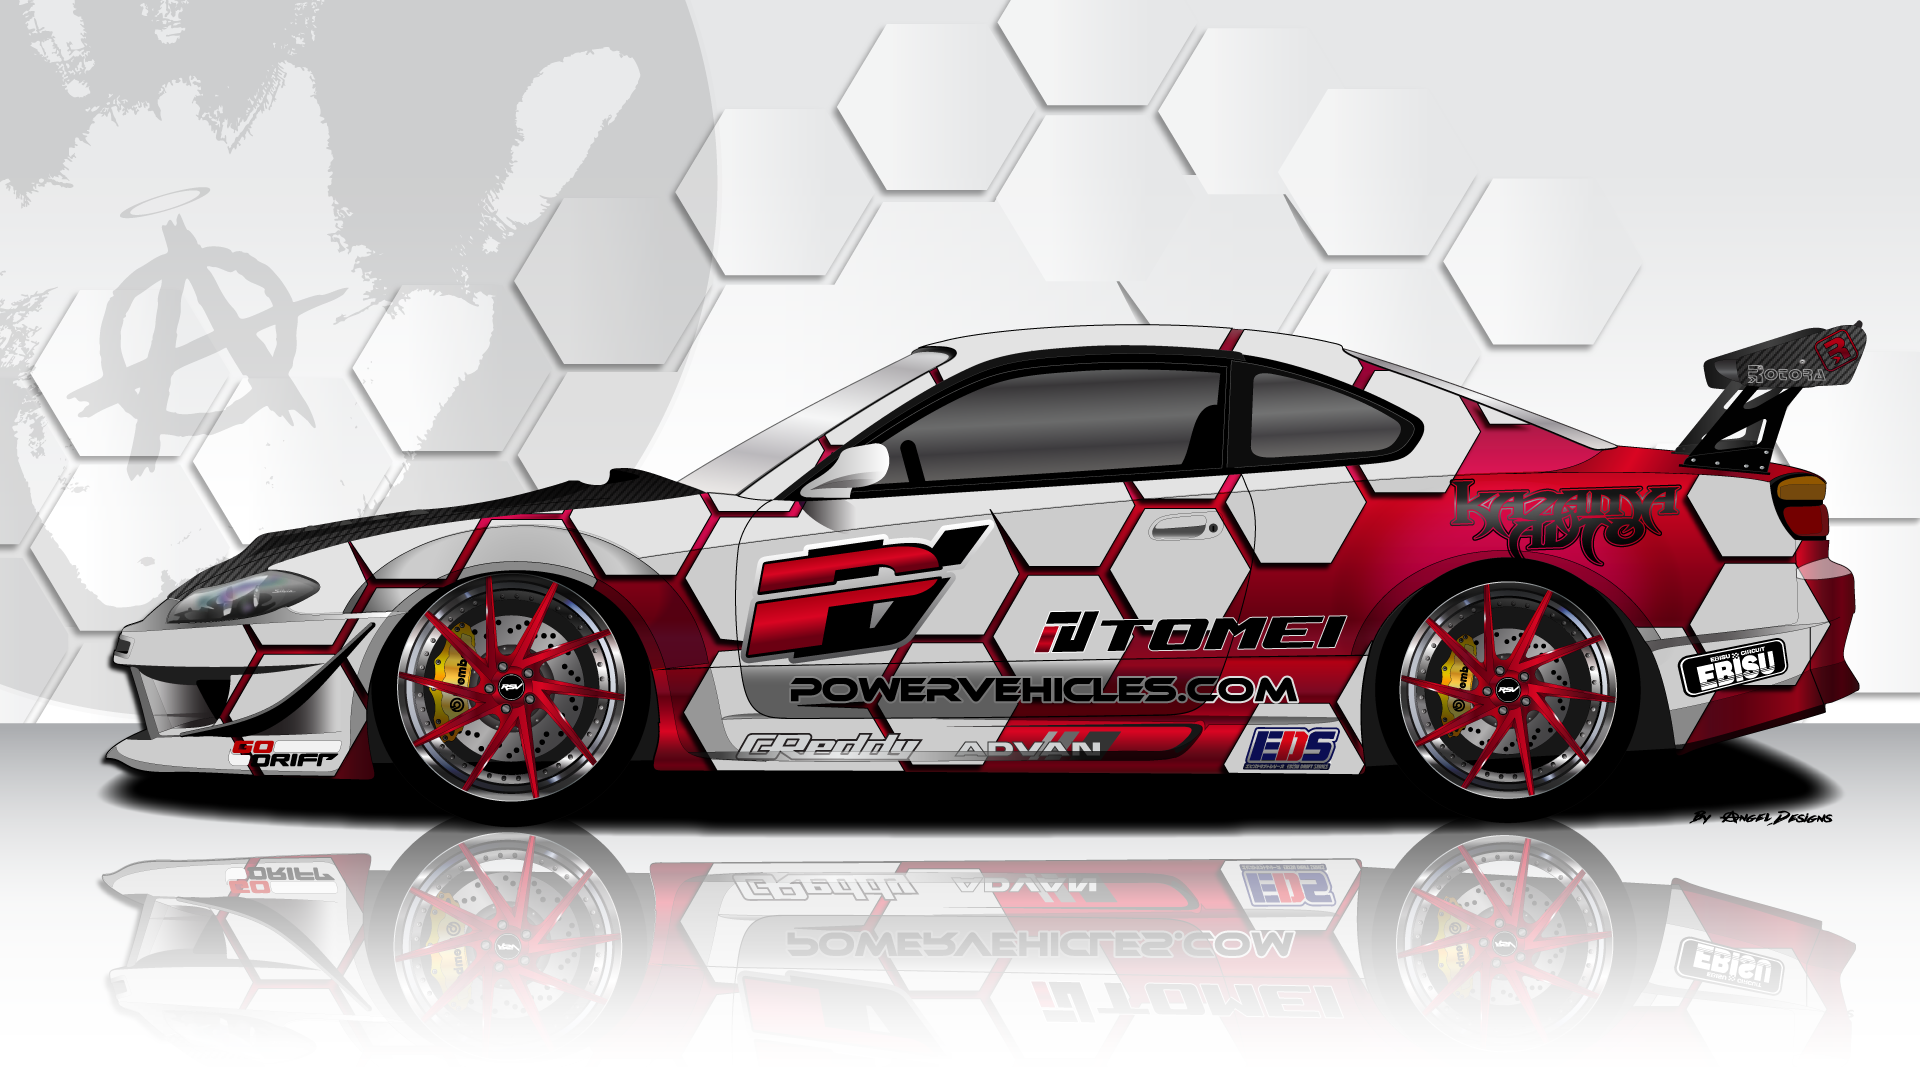 Nissan s15 silvia onna bugeisha petrolhead stickerdesigns wrapdesigns